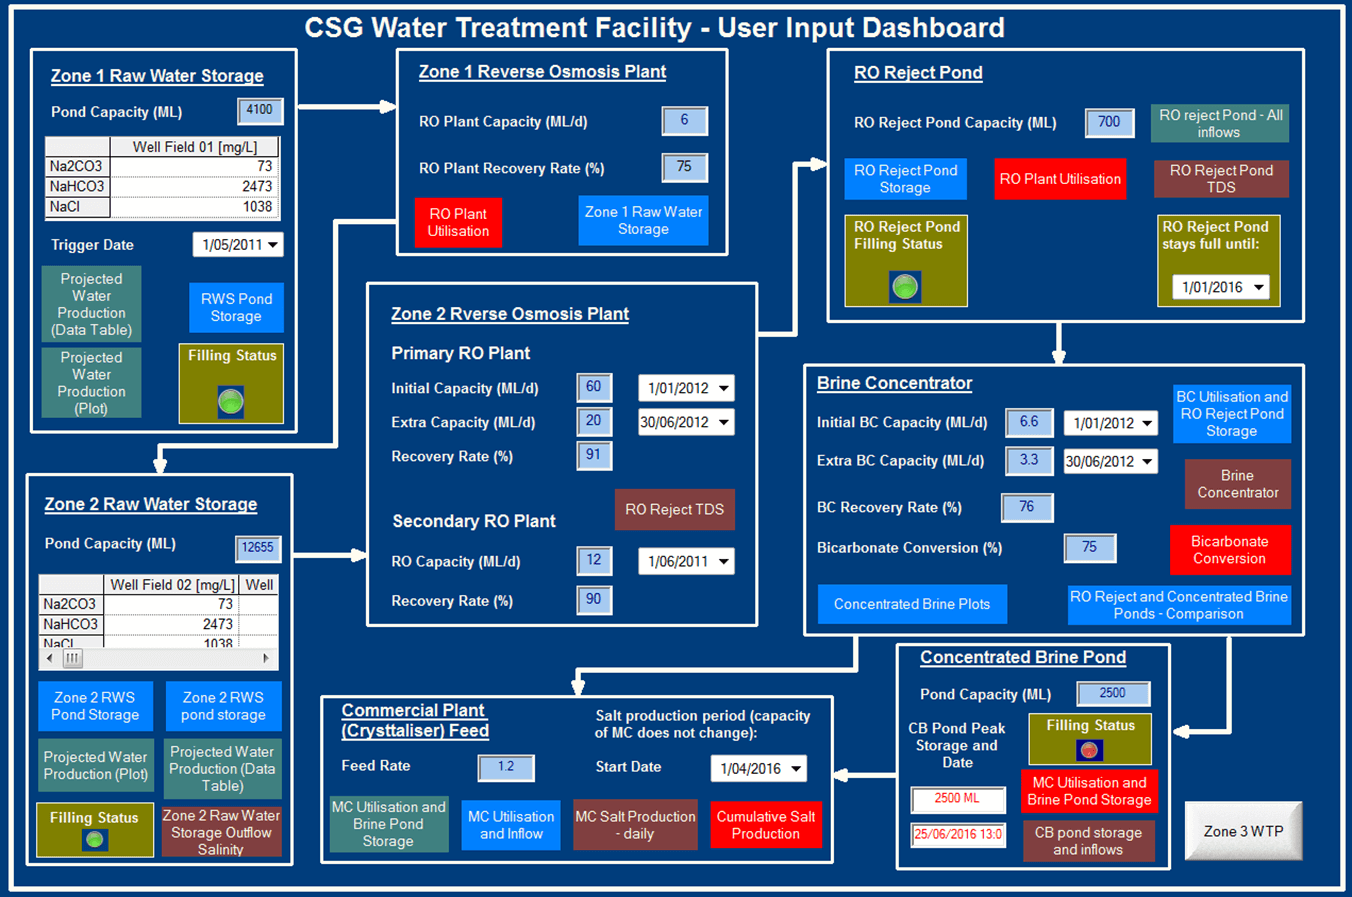 CSG Water Treatment Facility - User Input Dashboard